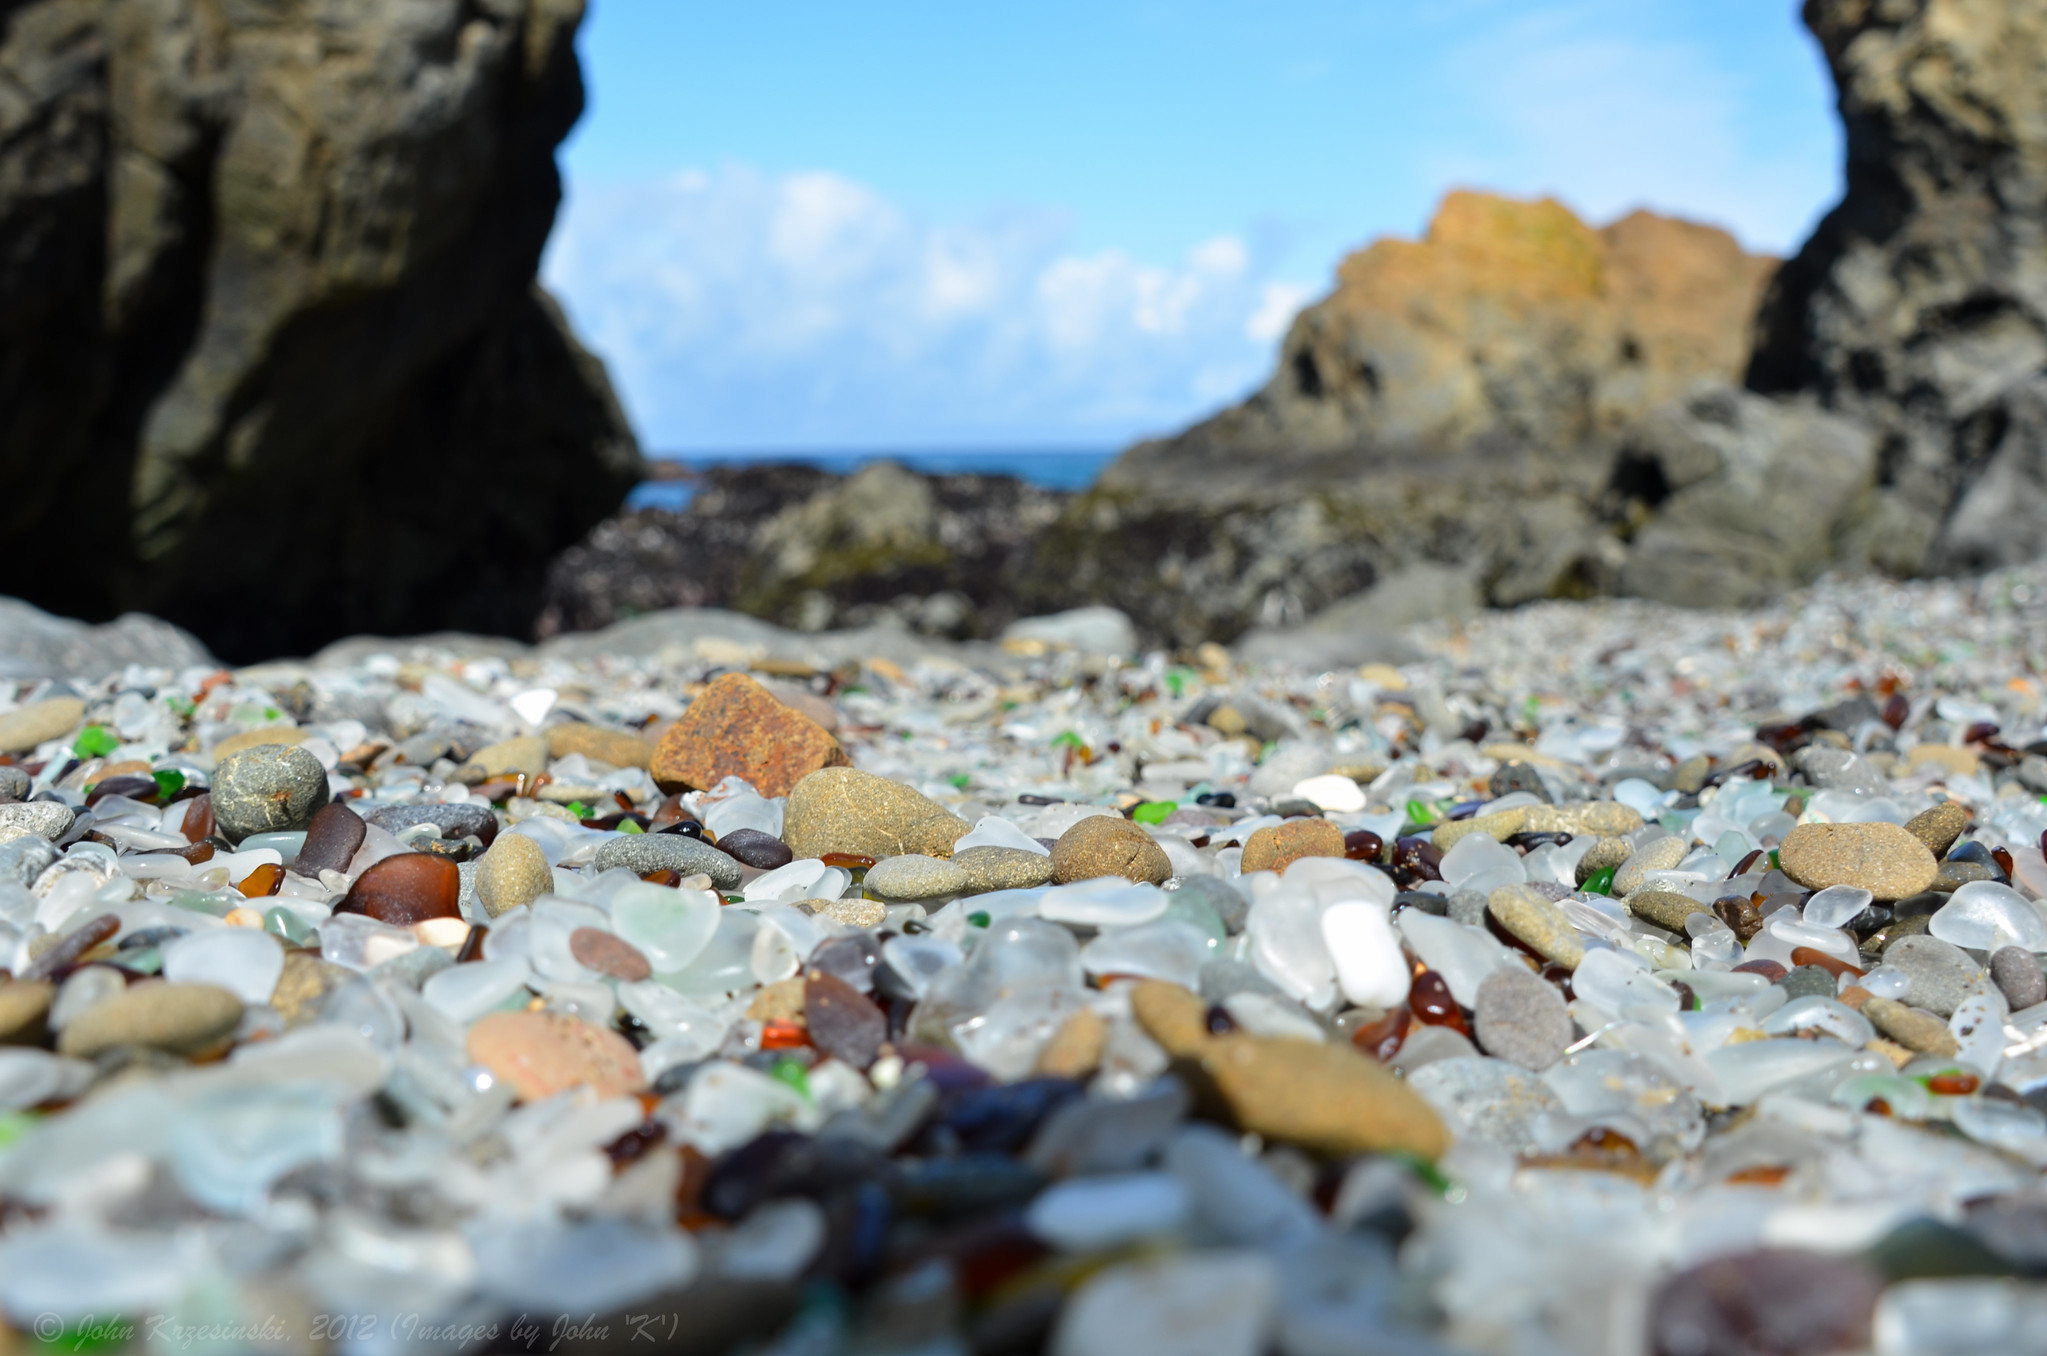 Glass Beach / John Krzesinski, 2012